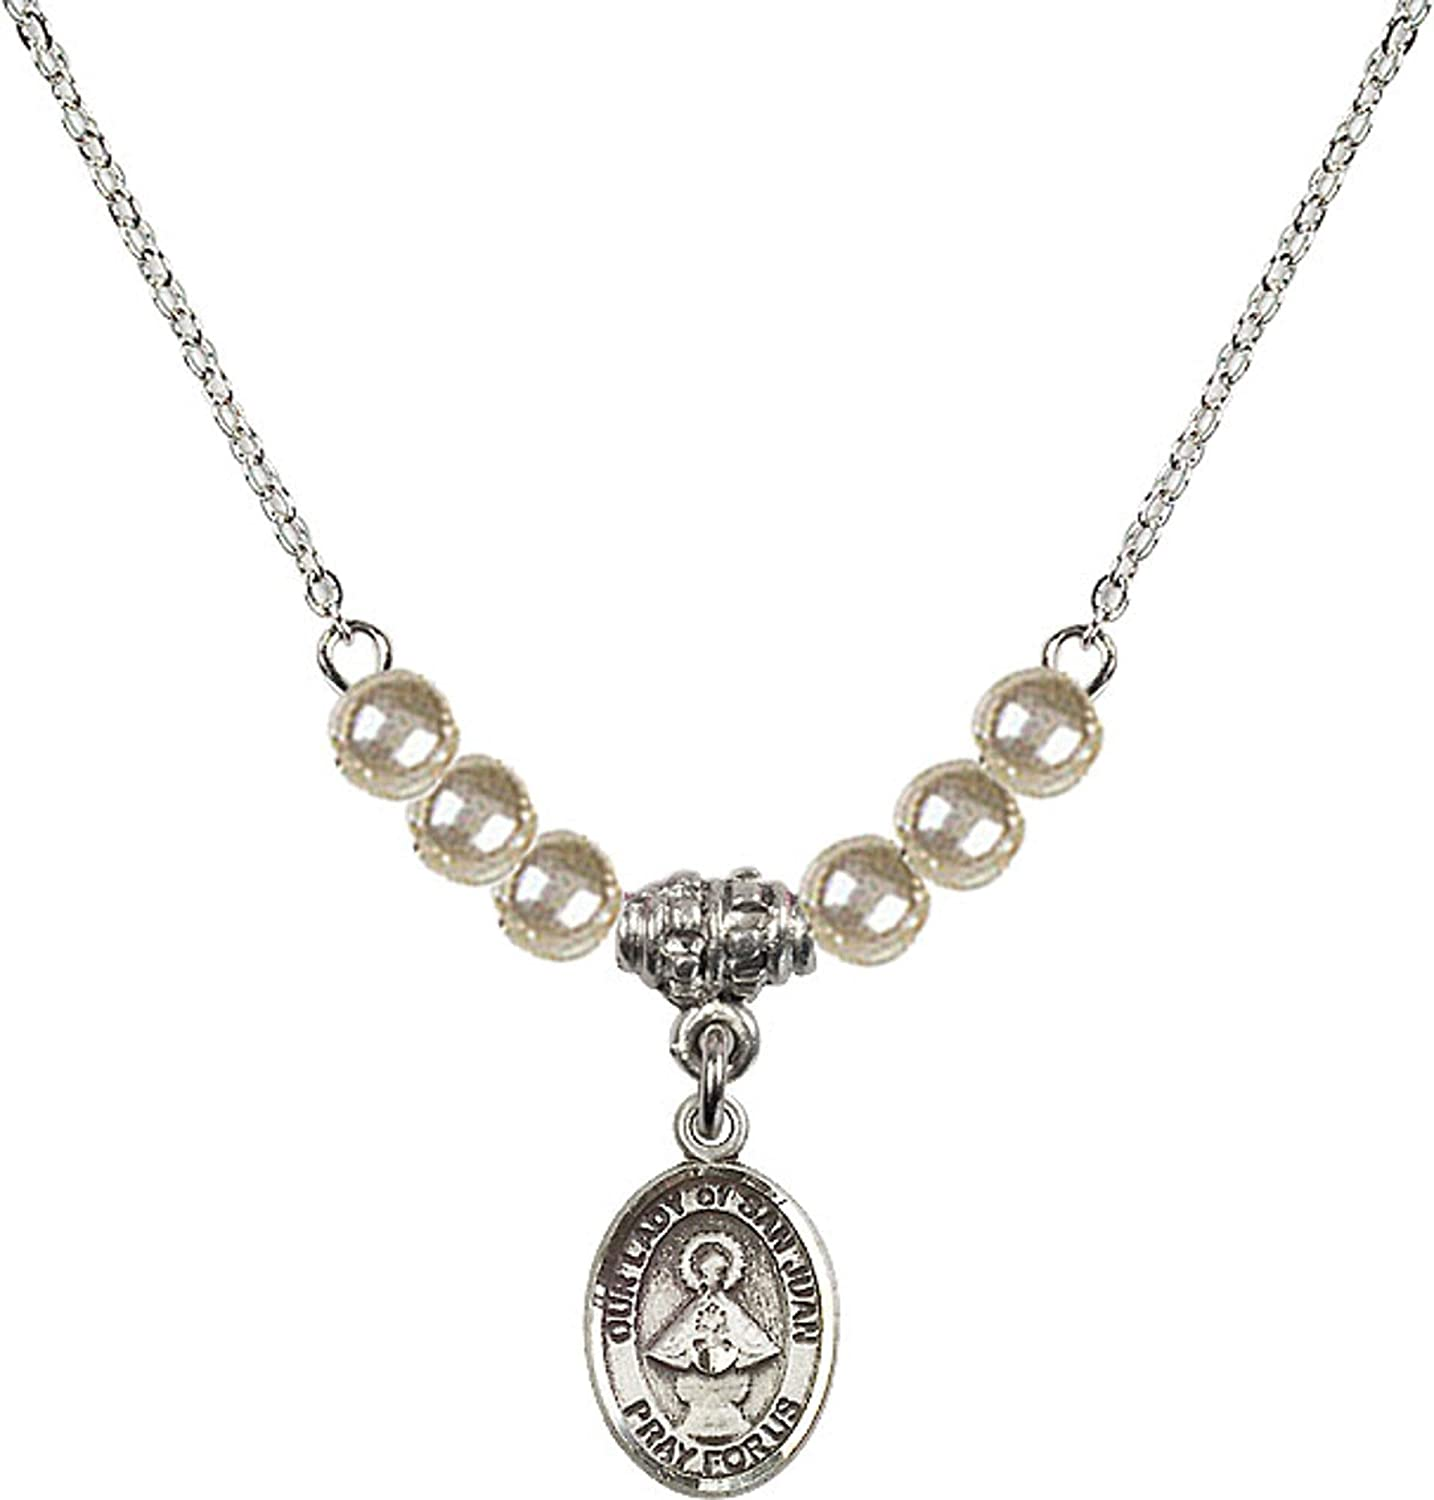 Bonyak Jewelry 18 Inch Rhodium Plated Necklace w// 4mm Faux-Pearl Beads and Our Lady of San Juan Charm